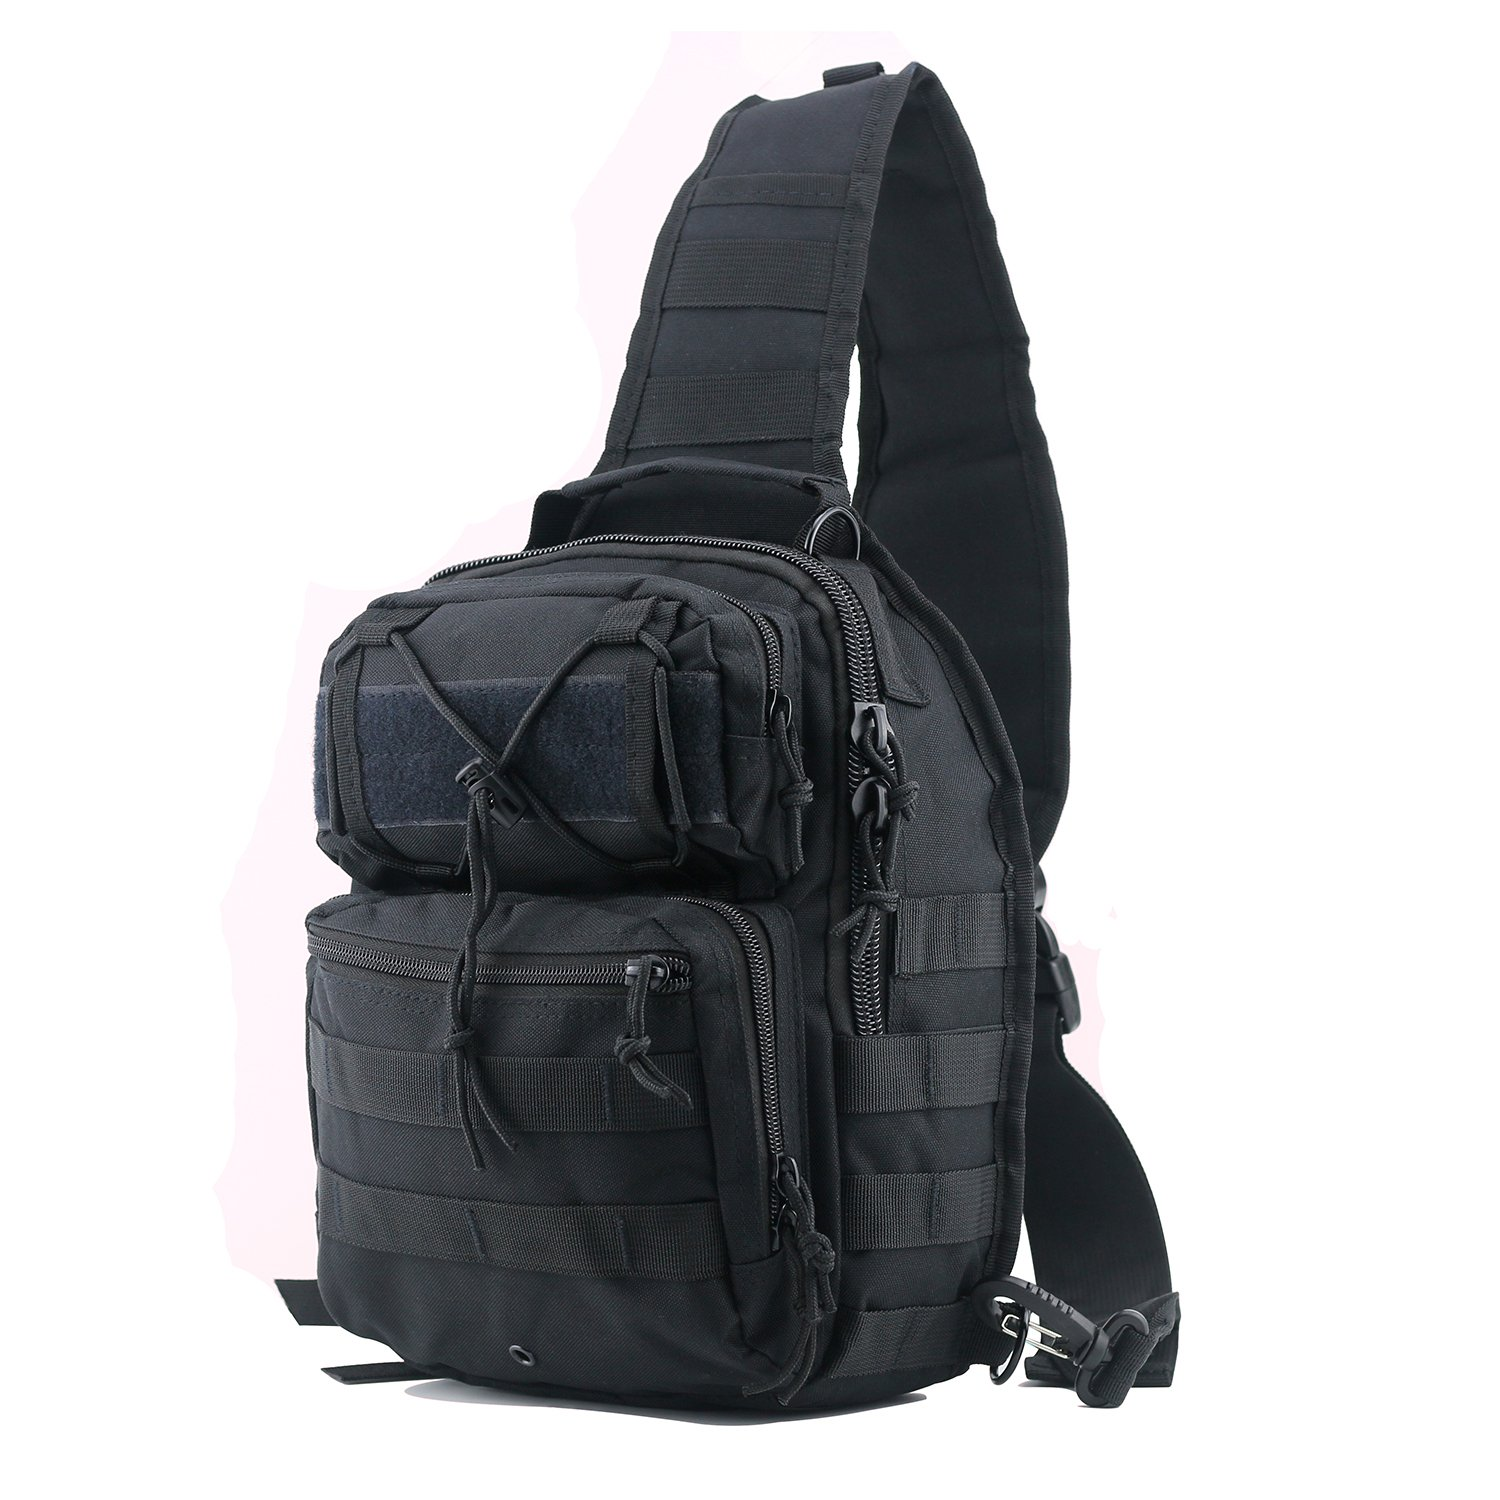 lovollect Tactical Sling Bag Pack Black Military Rover Shoulder Sling Backpack Small EDC Molle Assault Waterproof Chest Crossbody Bag